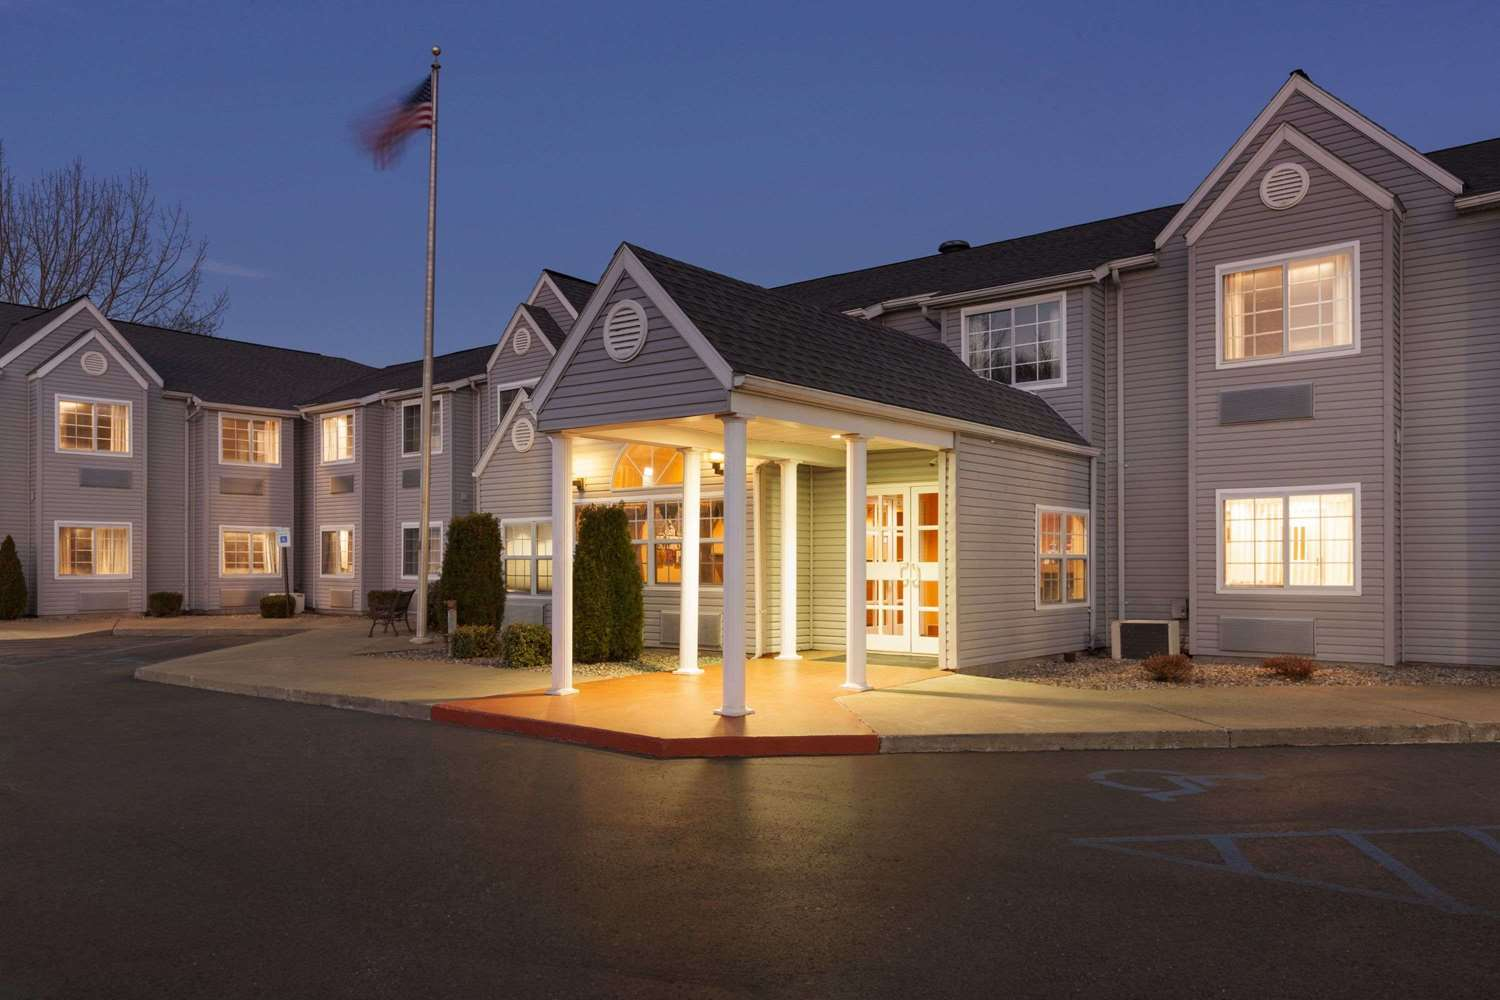 Exterior view - Microtel Inn by Wyndham Albany Airport Latham